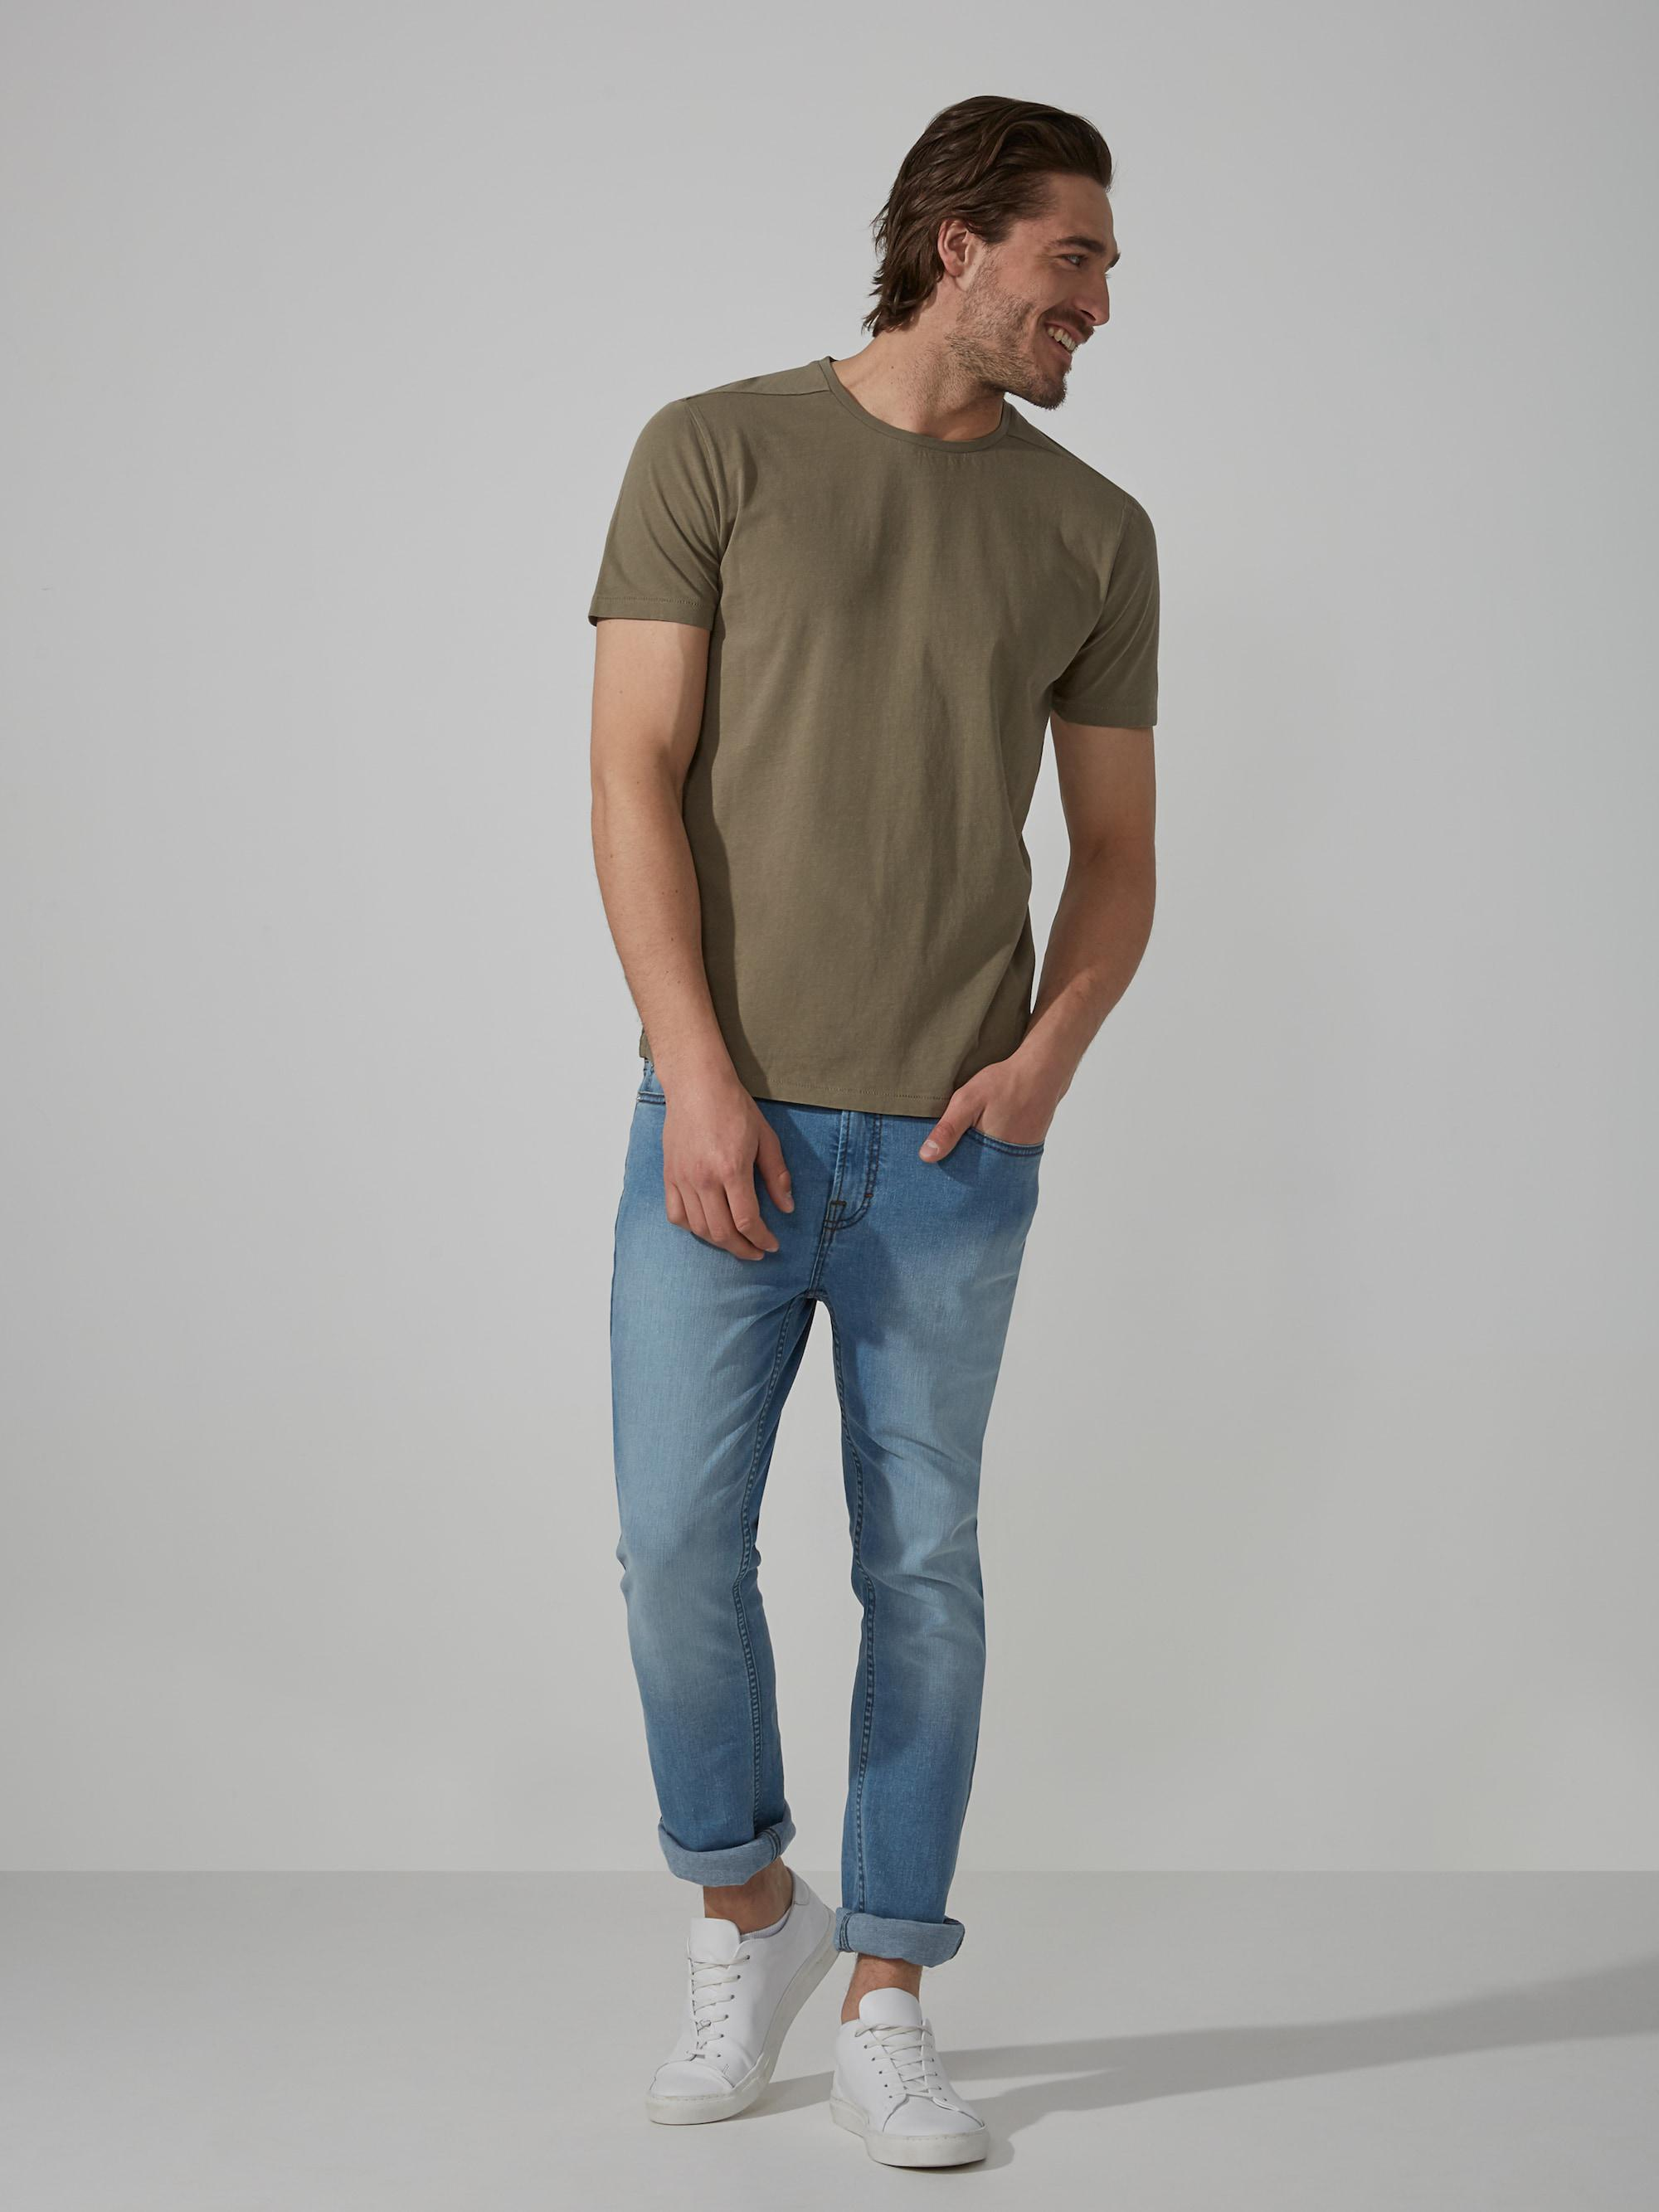 9d5a2a666e Lyst - Frank And Oak Loose-fit T-shirt In Washed Sage Green in Green ...